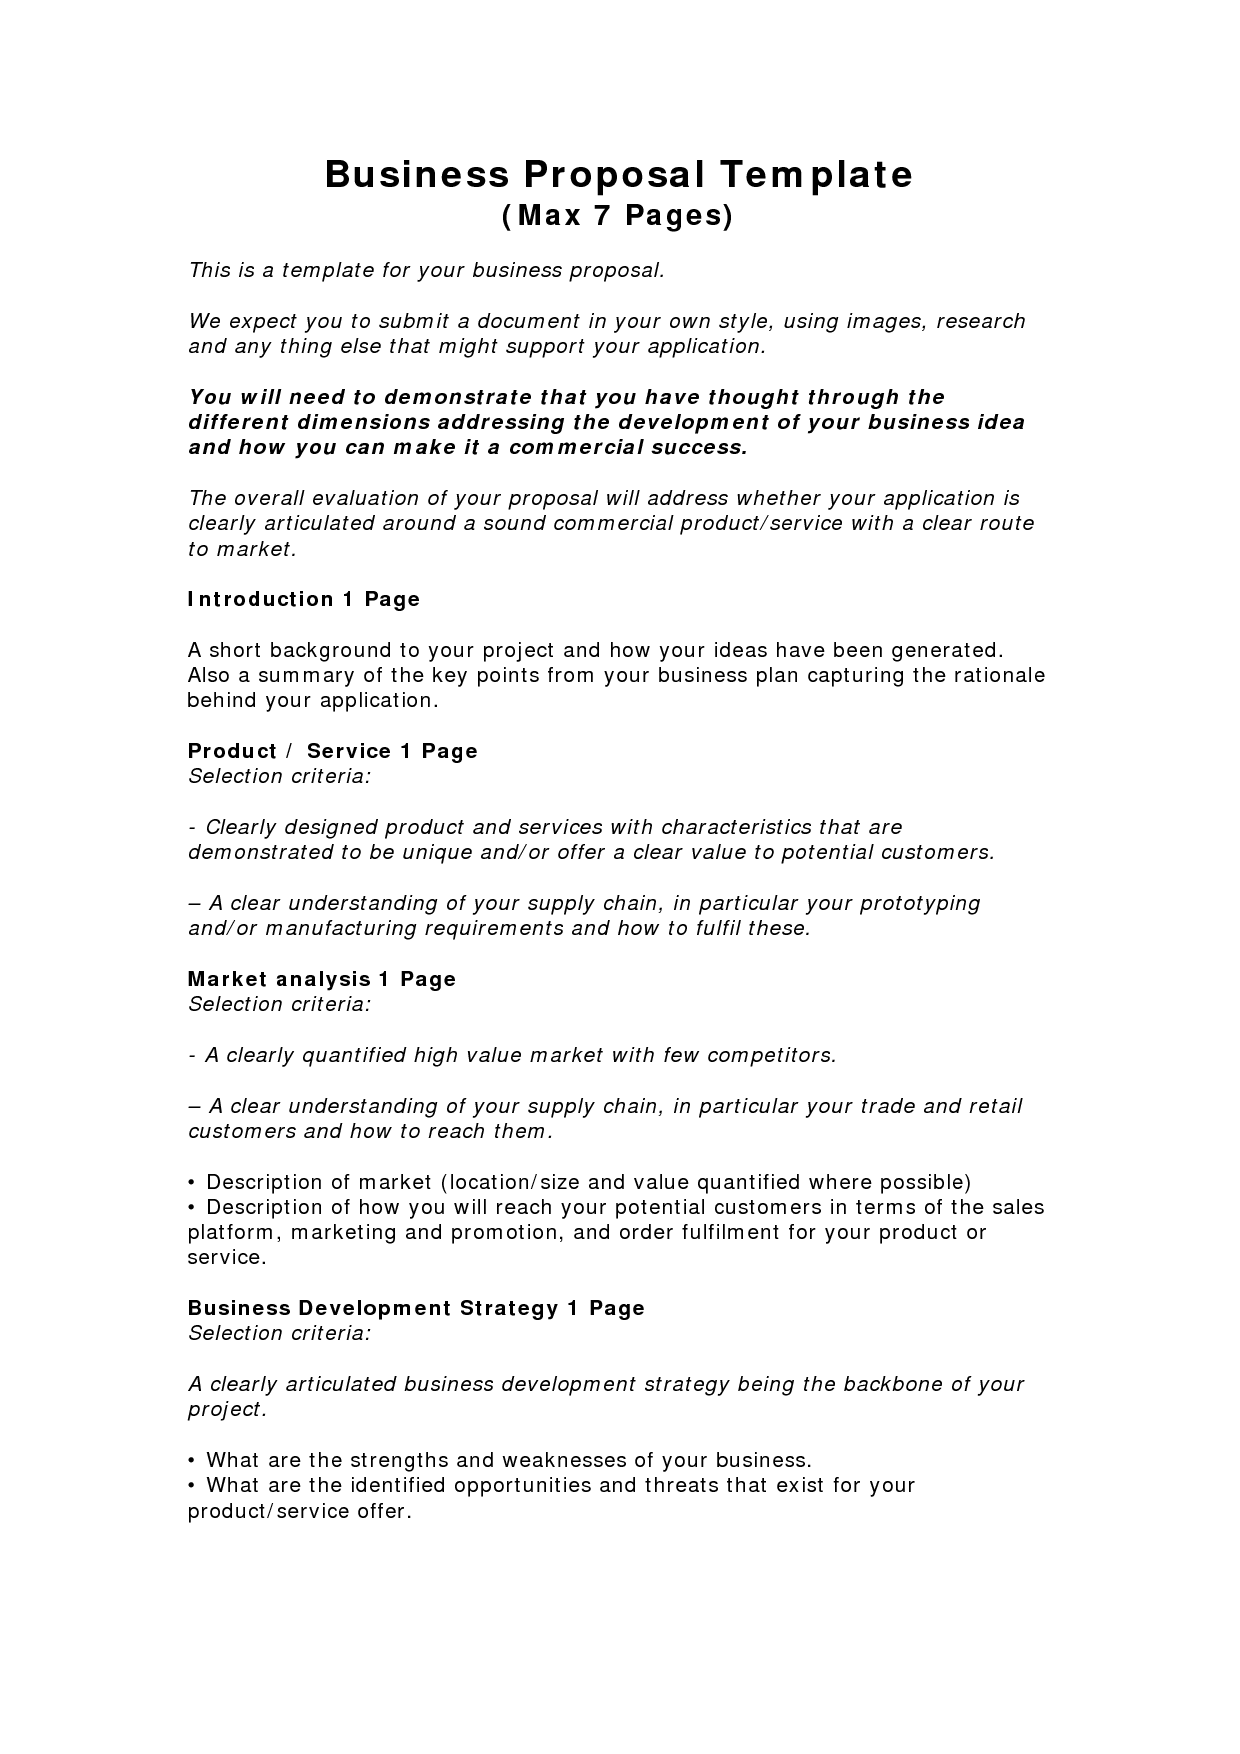 Business Proposal Templates Examples | Business Proposal Template